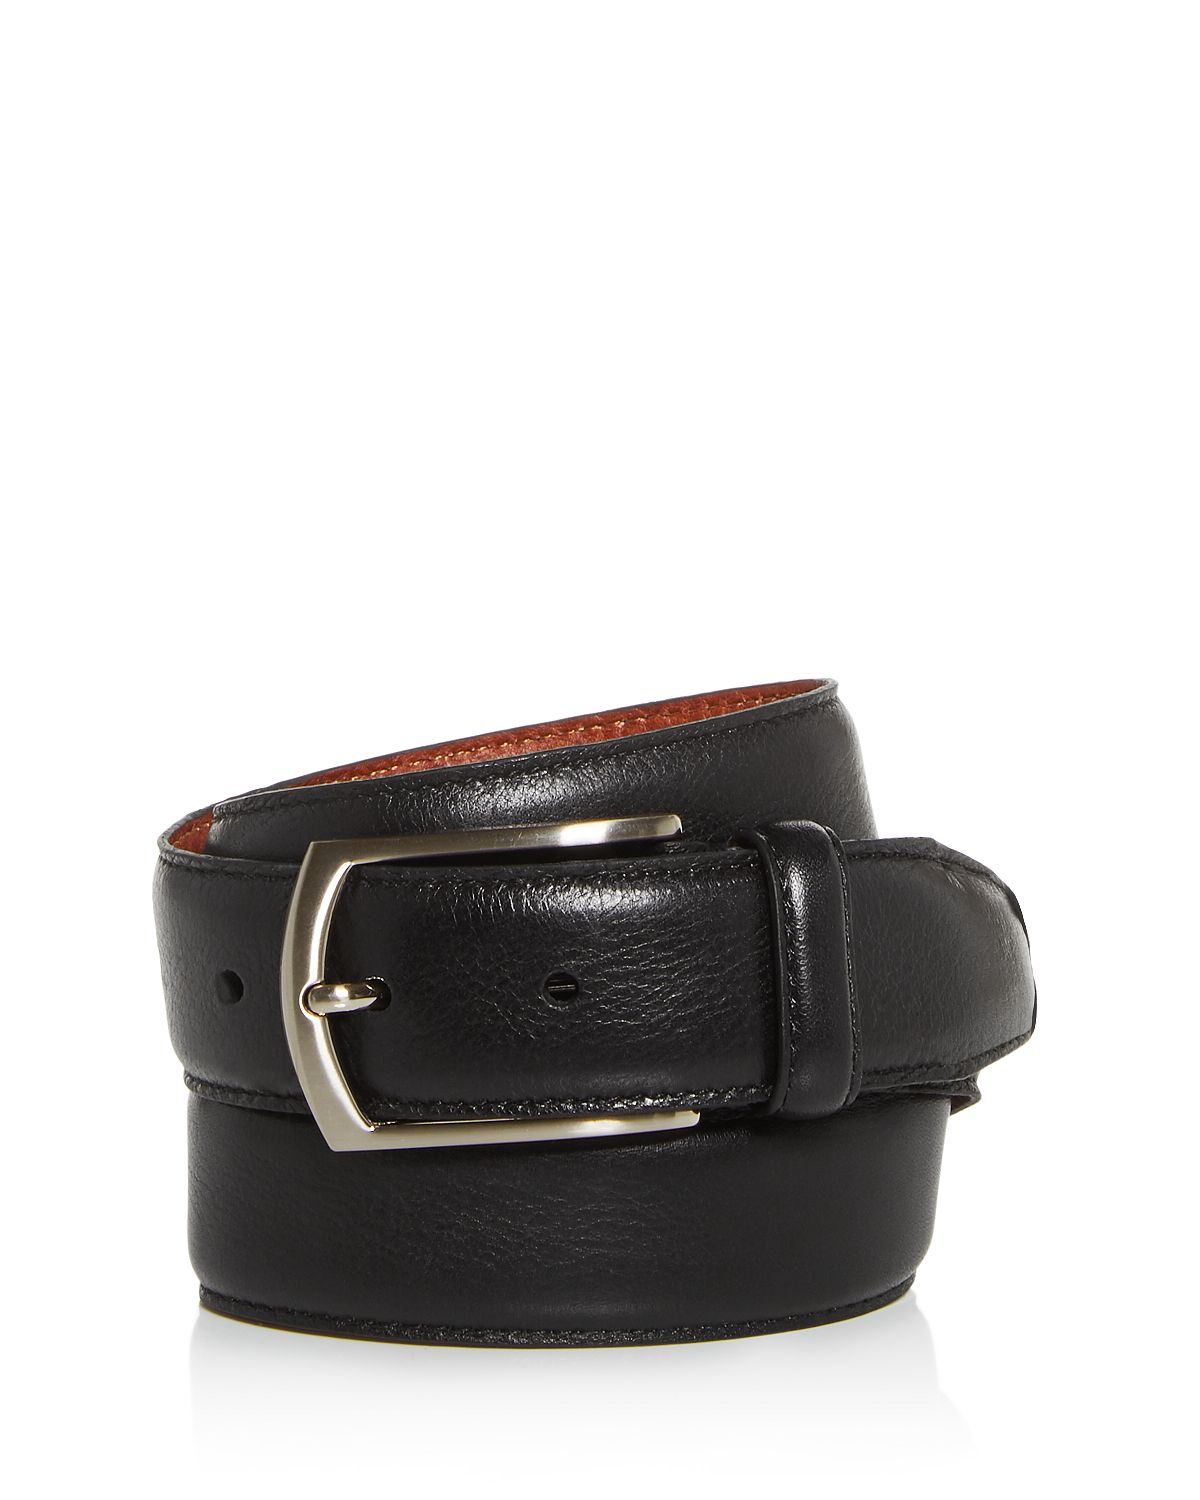 Trafalgar Antonio Leather Belt Black